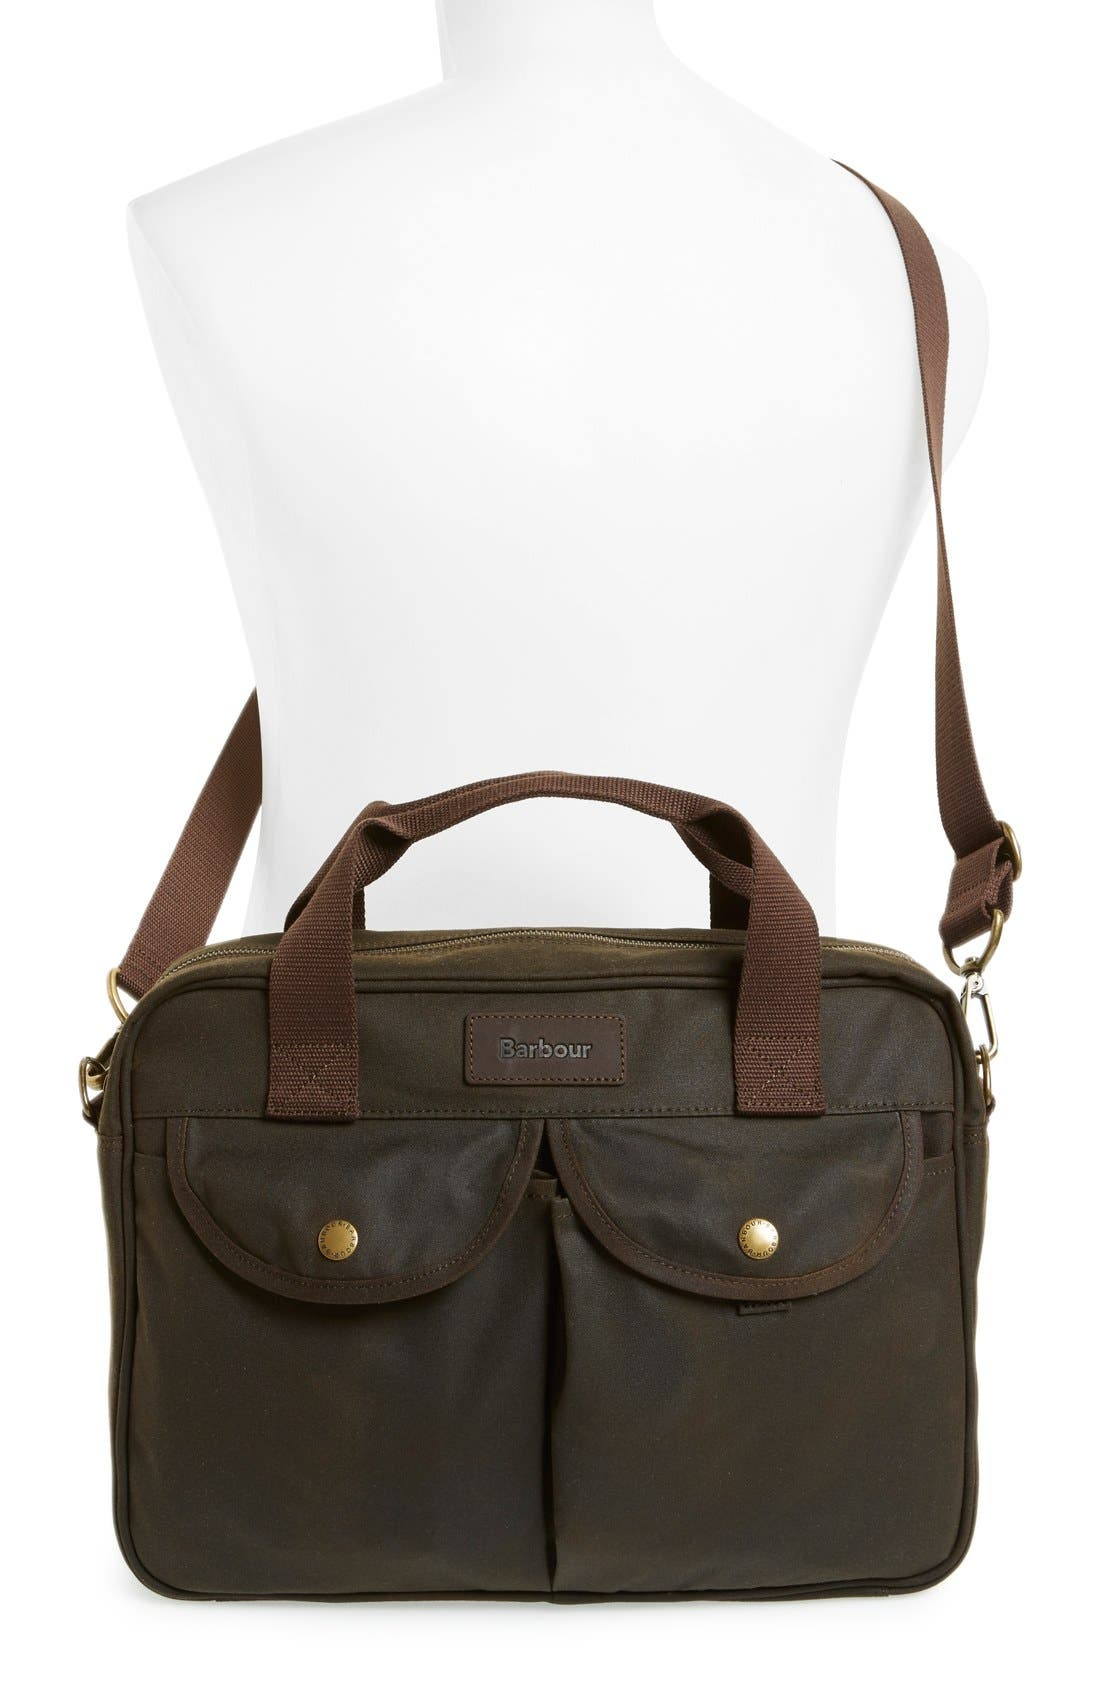 'Longthorpe' Waxed Canvas Laptop Bag,                             Alternate thumbnail 2, color,                             340